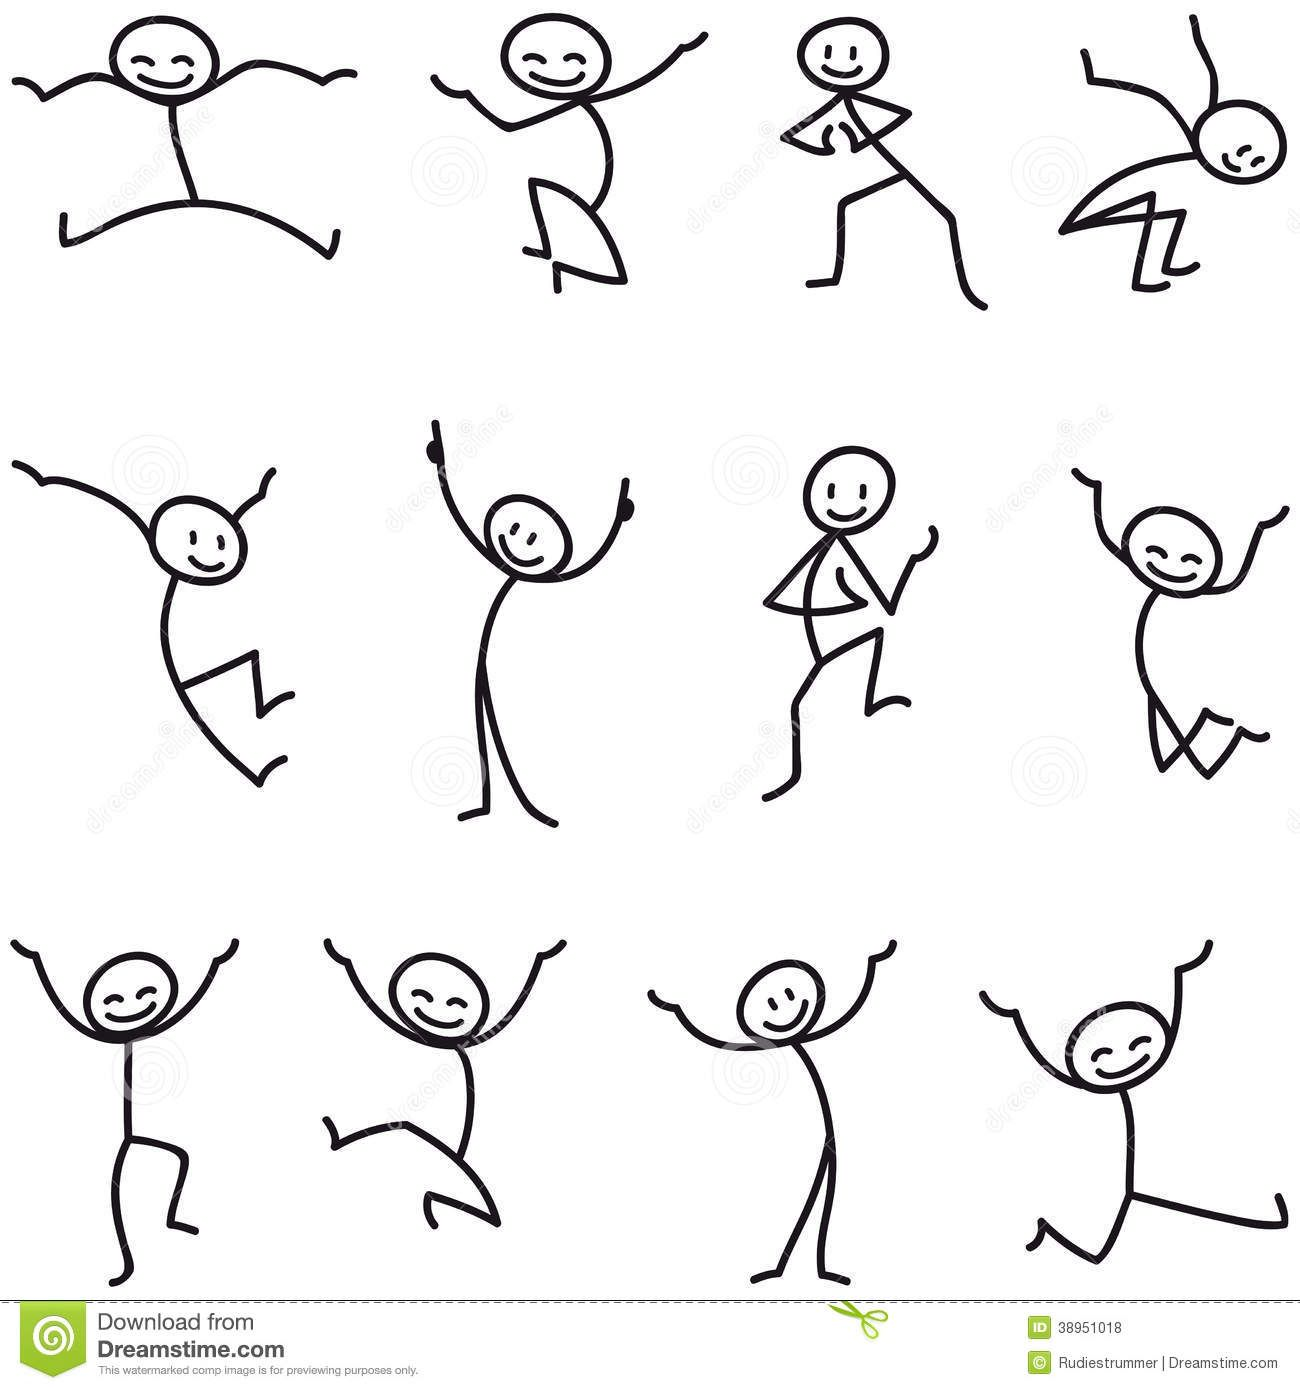 graphic black and white Man figure happy jumping. Drawing stick easy